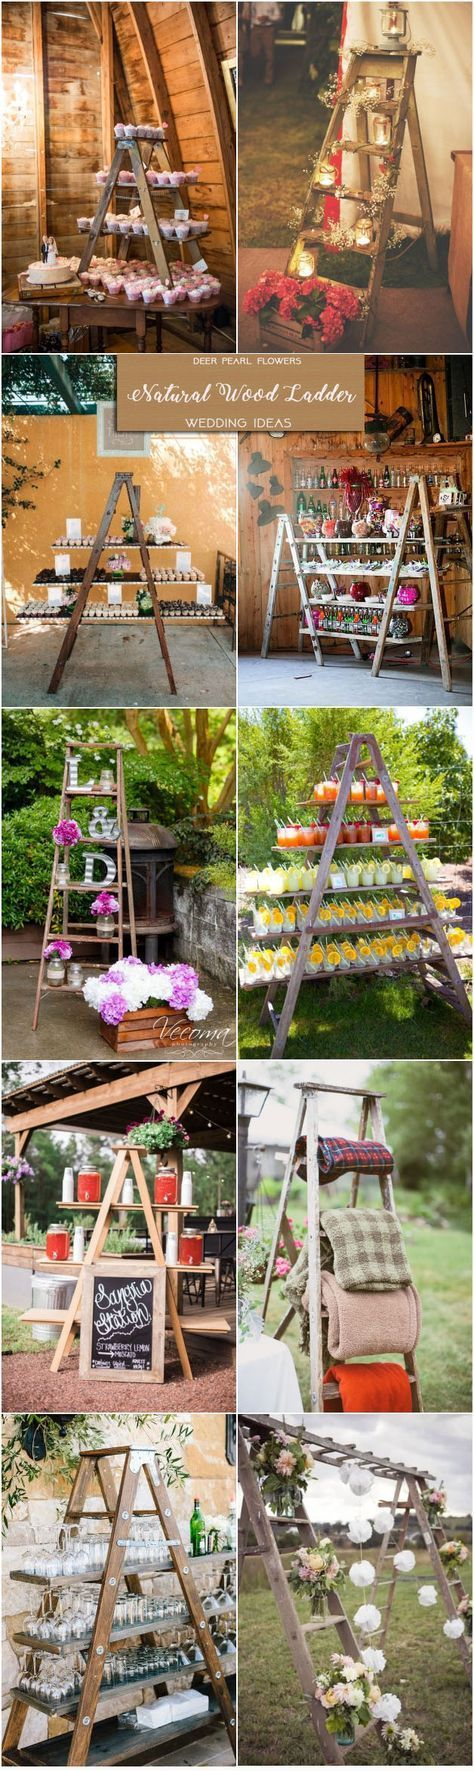 Wedding ideas rustic theme  Rustic wedding ideas natural wood ladder wedding decor ideas